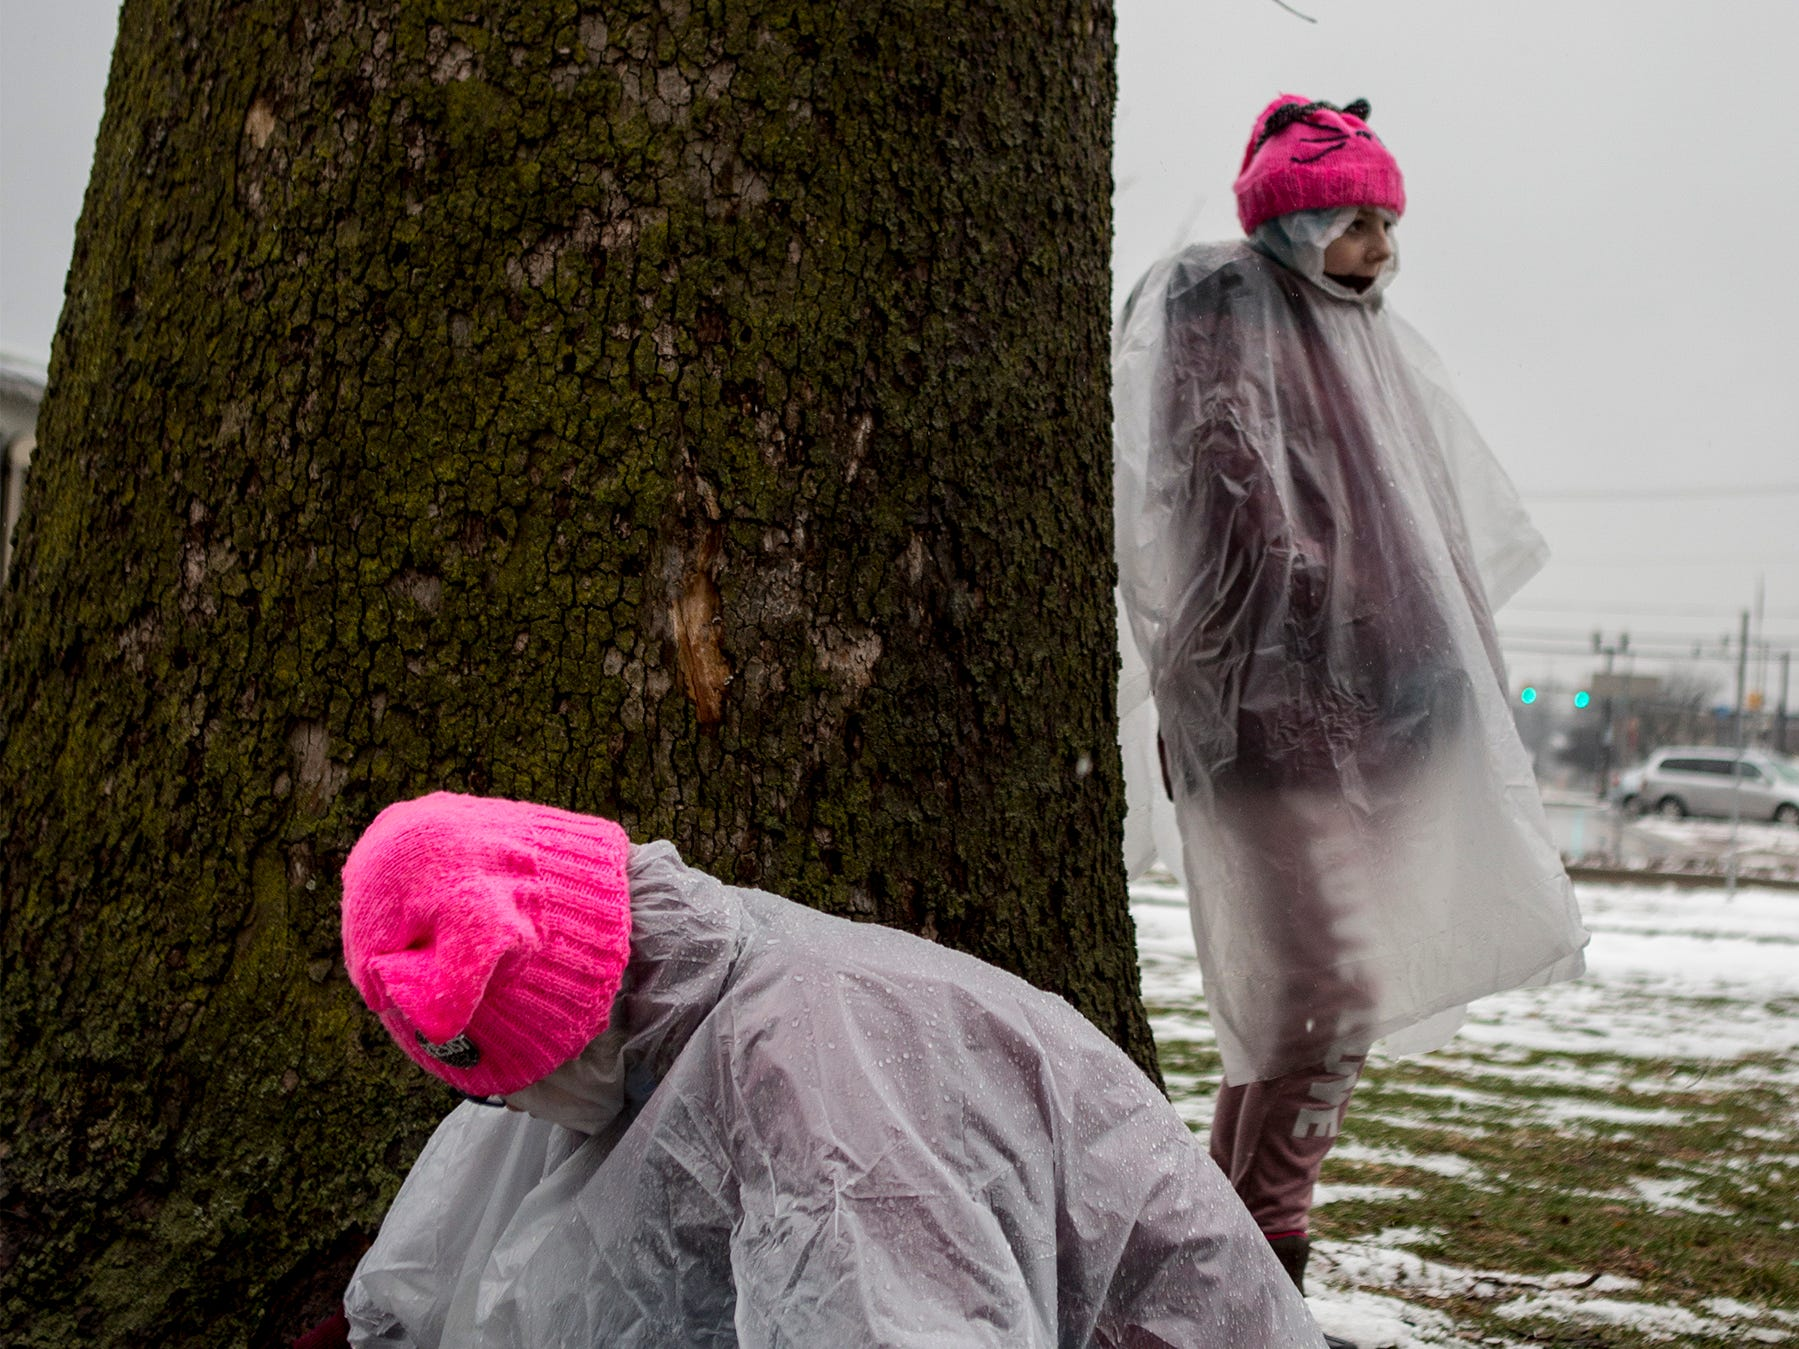 Miranda Gets of Zanesville leans against a tree listening to speakers at the Women's March in Newark while keeping an eye on her sister, who was looking for worms at the base of the tree.